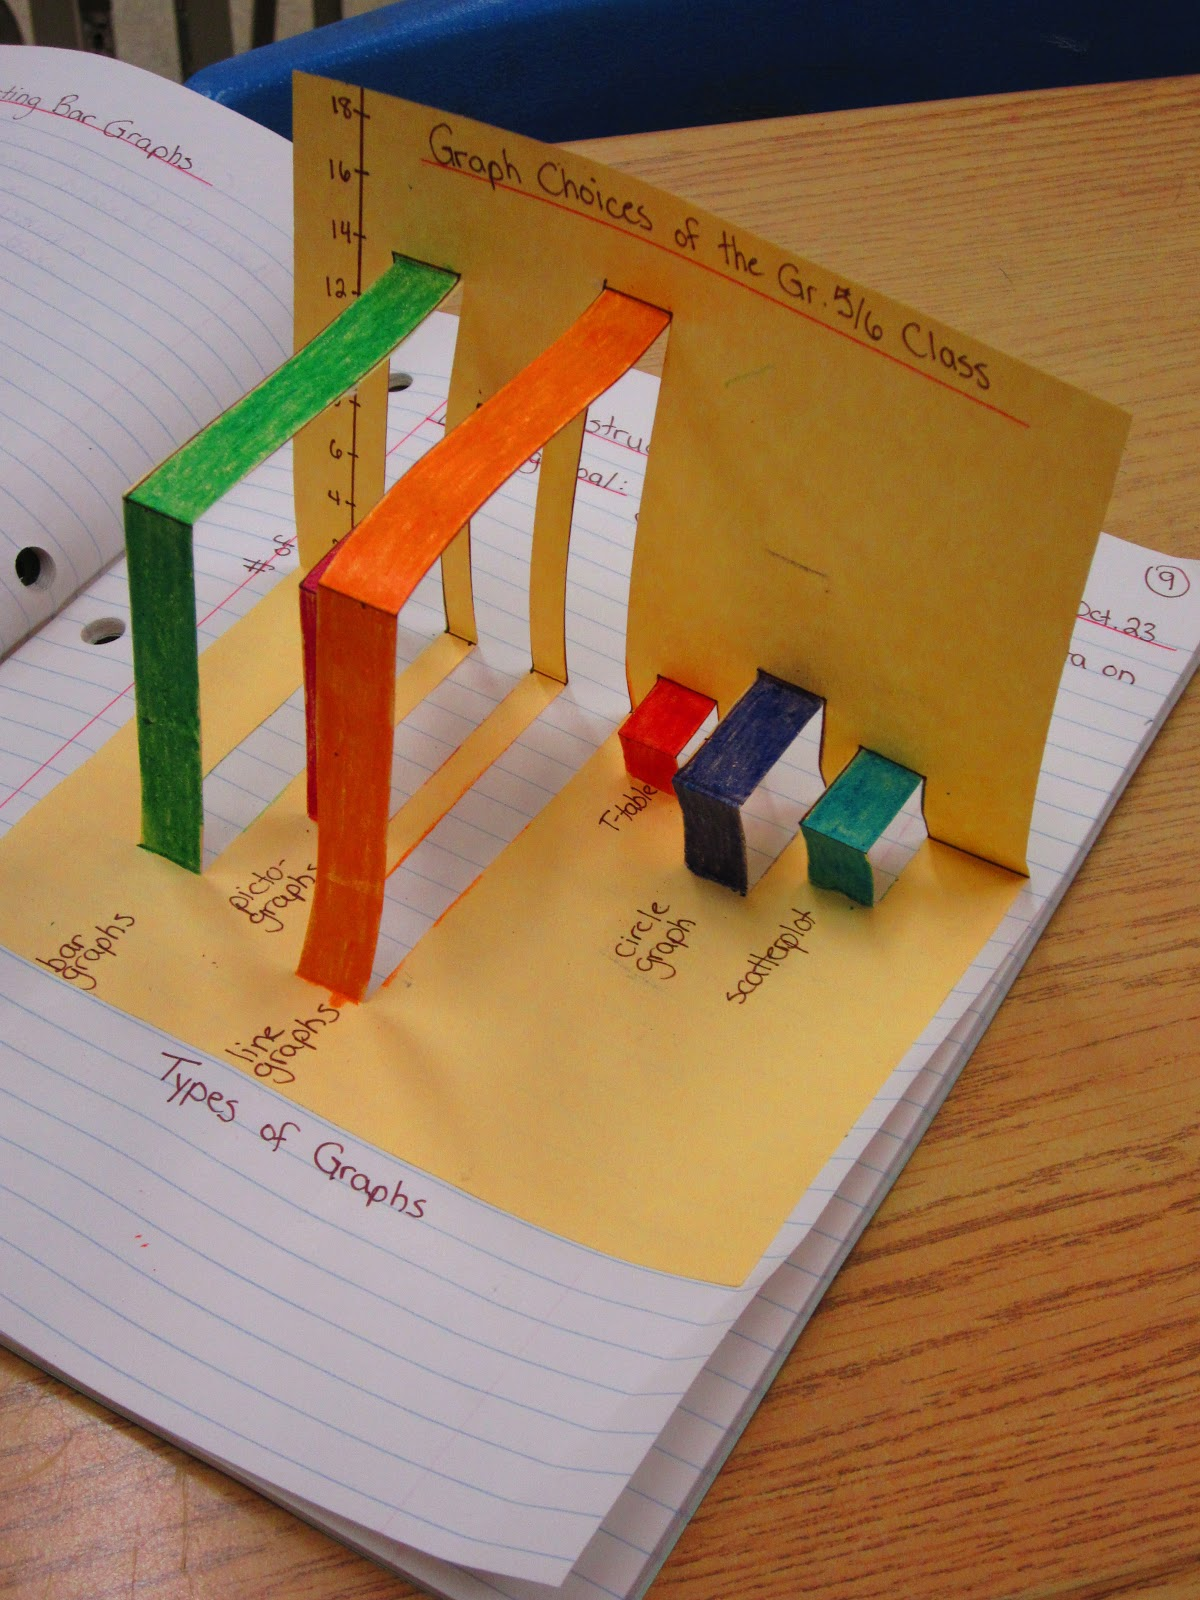 Dyscalculia Treatment Accommodations For School And Work